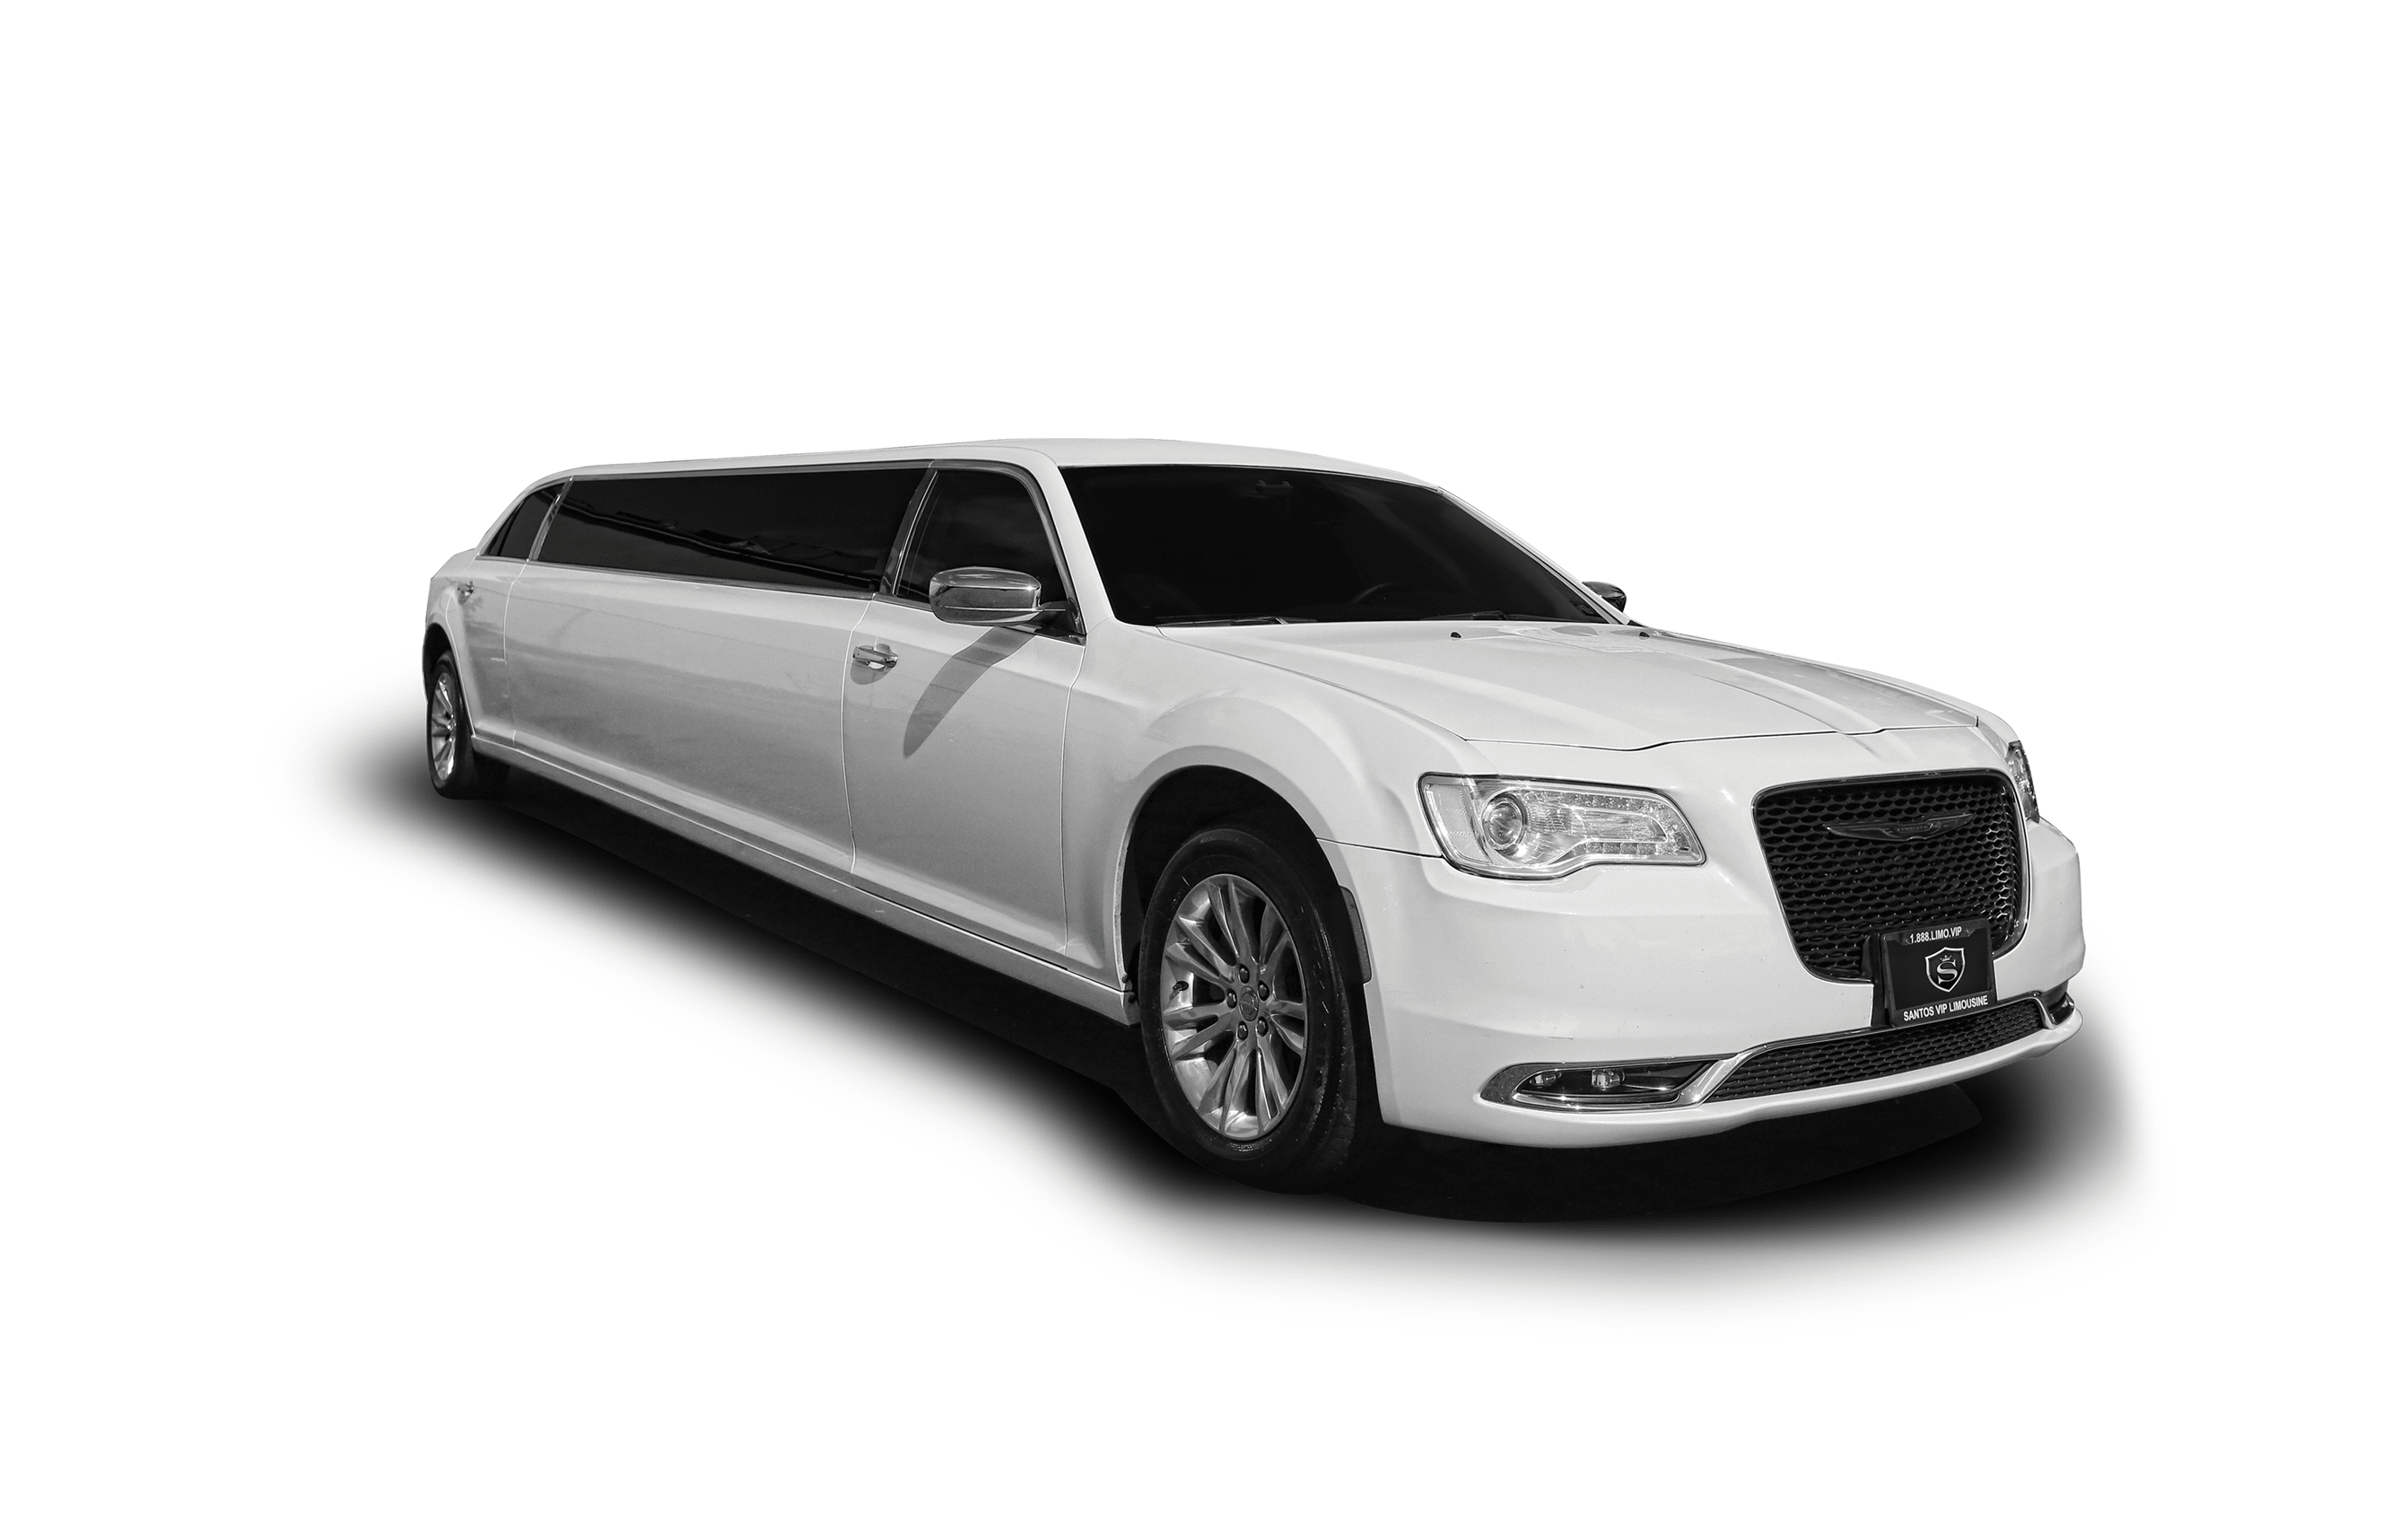 Chrysler 300 stretch limousine for Casino Limo Service in NJ - NY- PA and CT.